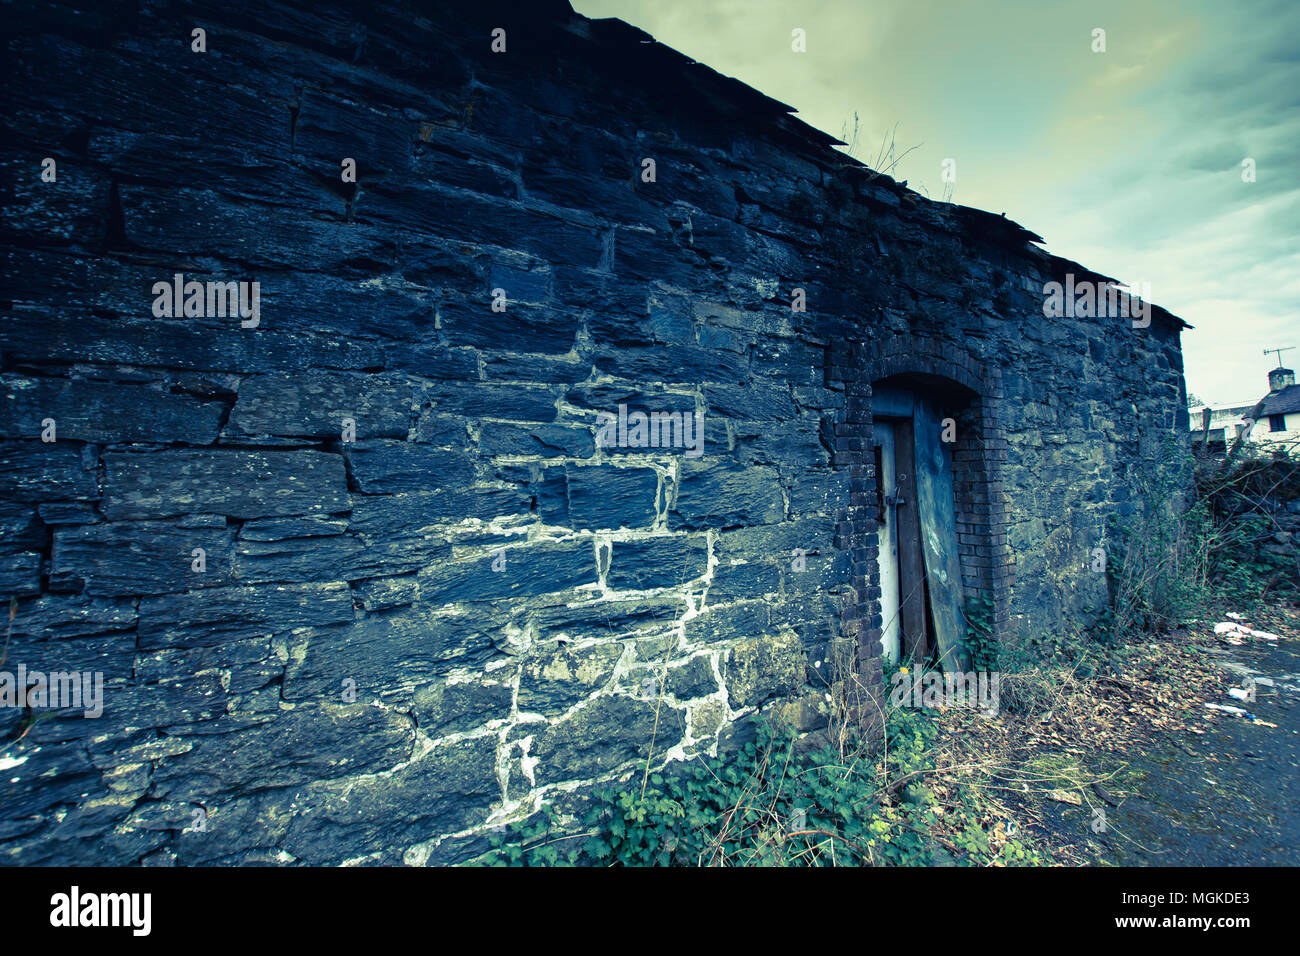 Derelict barn on british countryside.Dark and moody image of empty building,great book cover,instagram style filters.Abandoned building in North Wales. - Stock Image